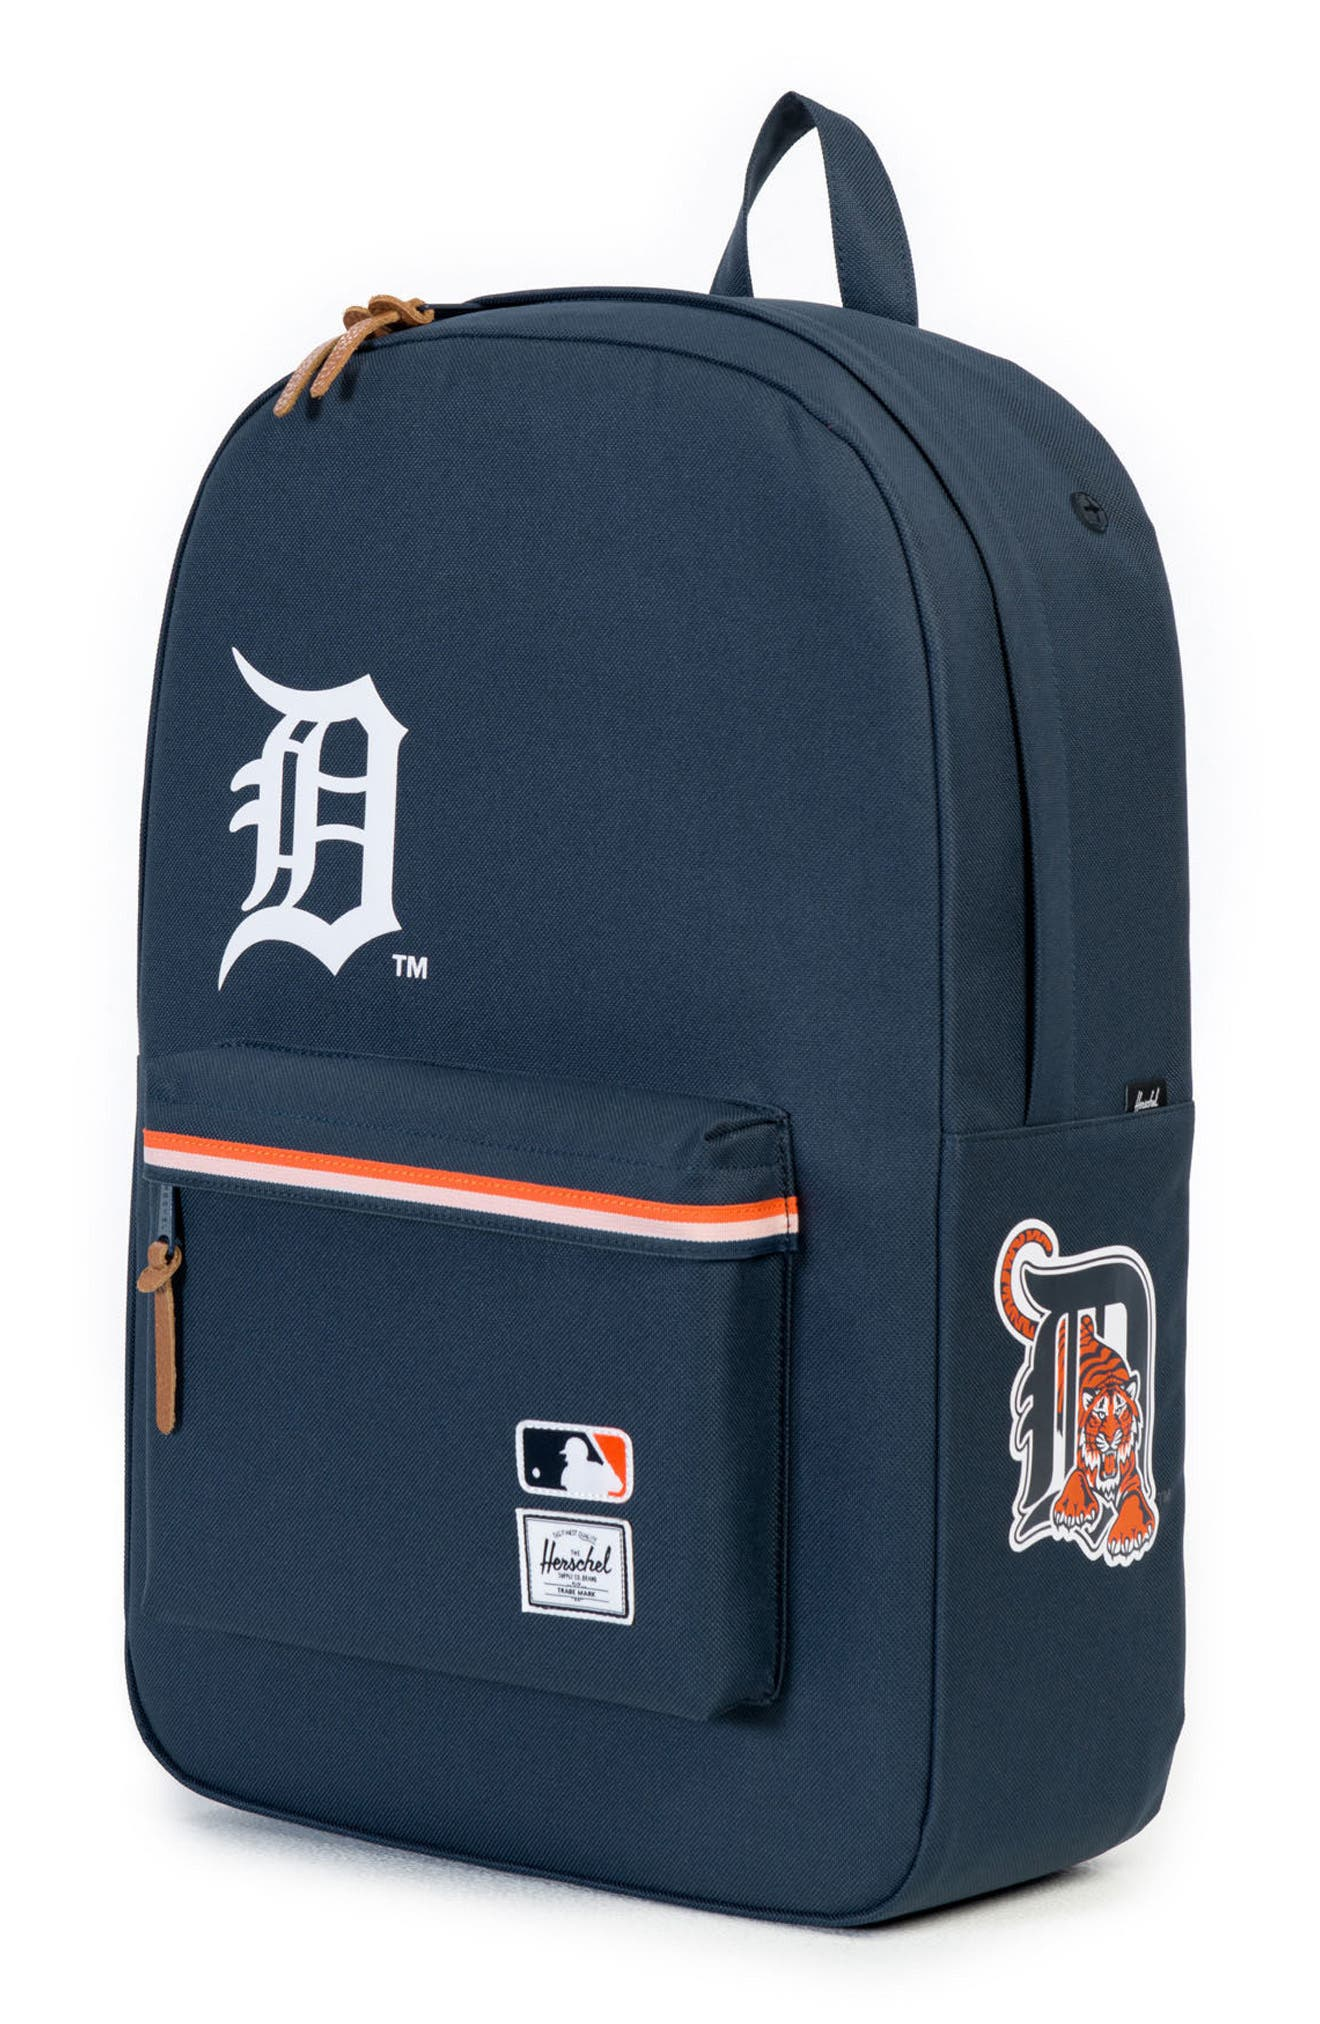 Heritage Detroit Tigers Backpack,                             Alternate thumbnail 4, color,                             499